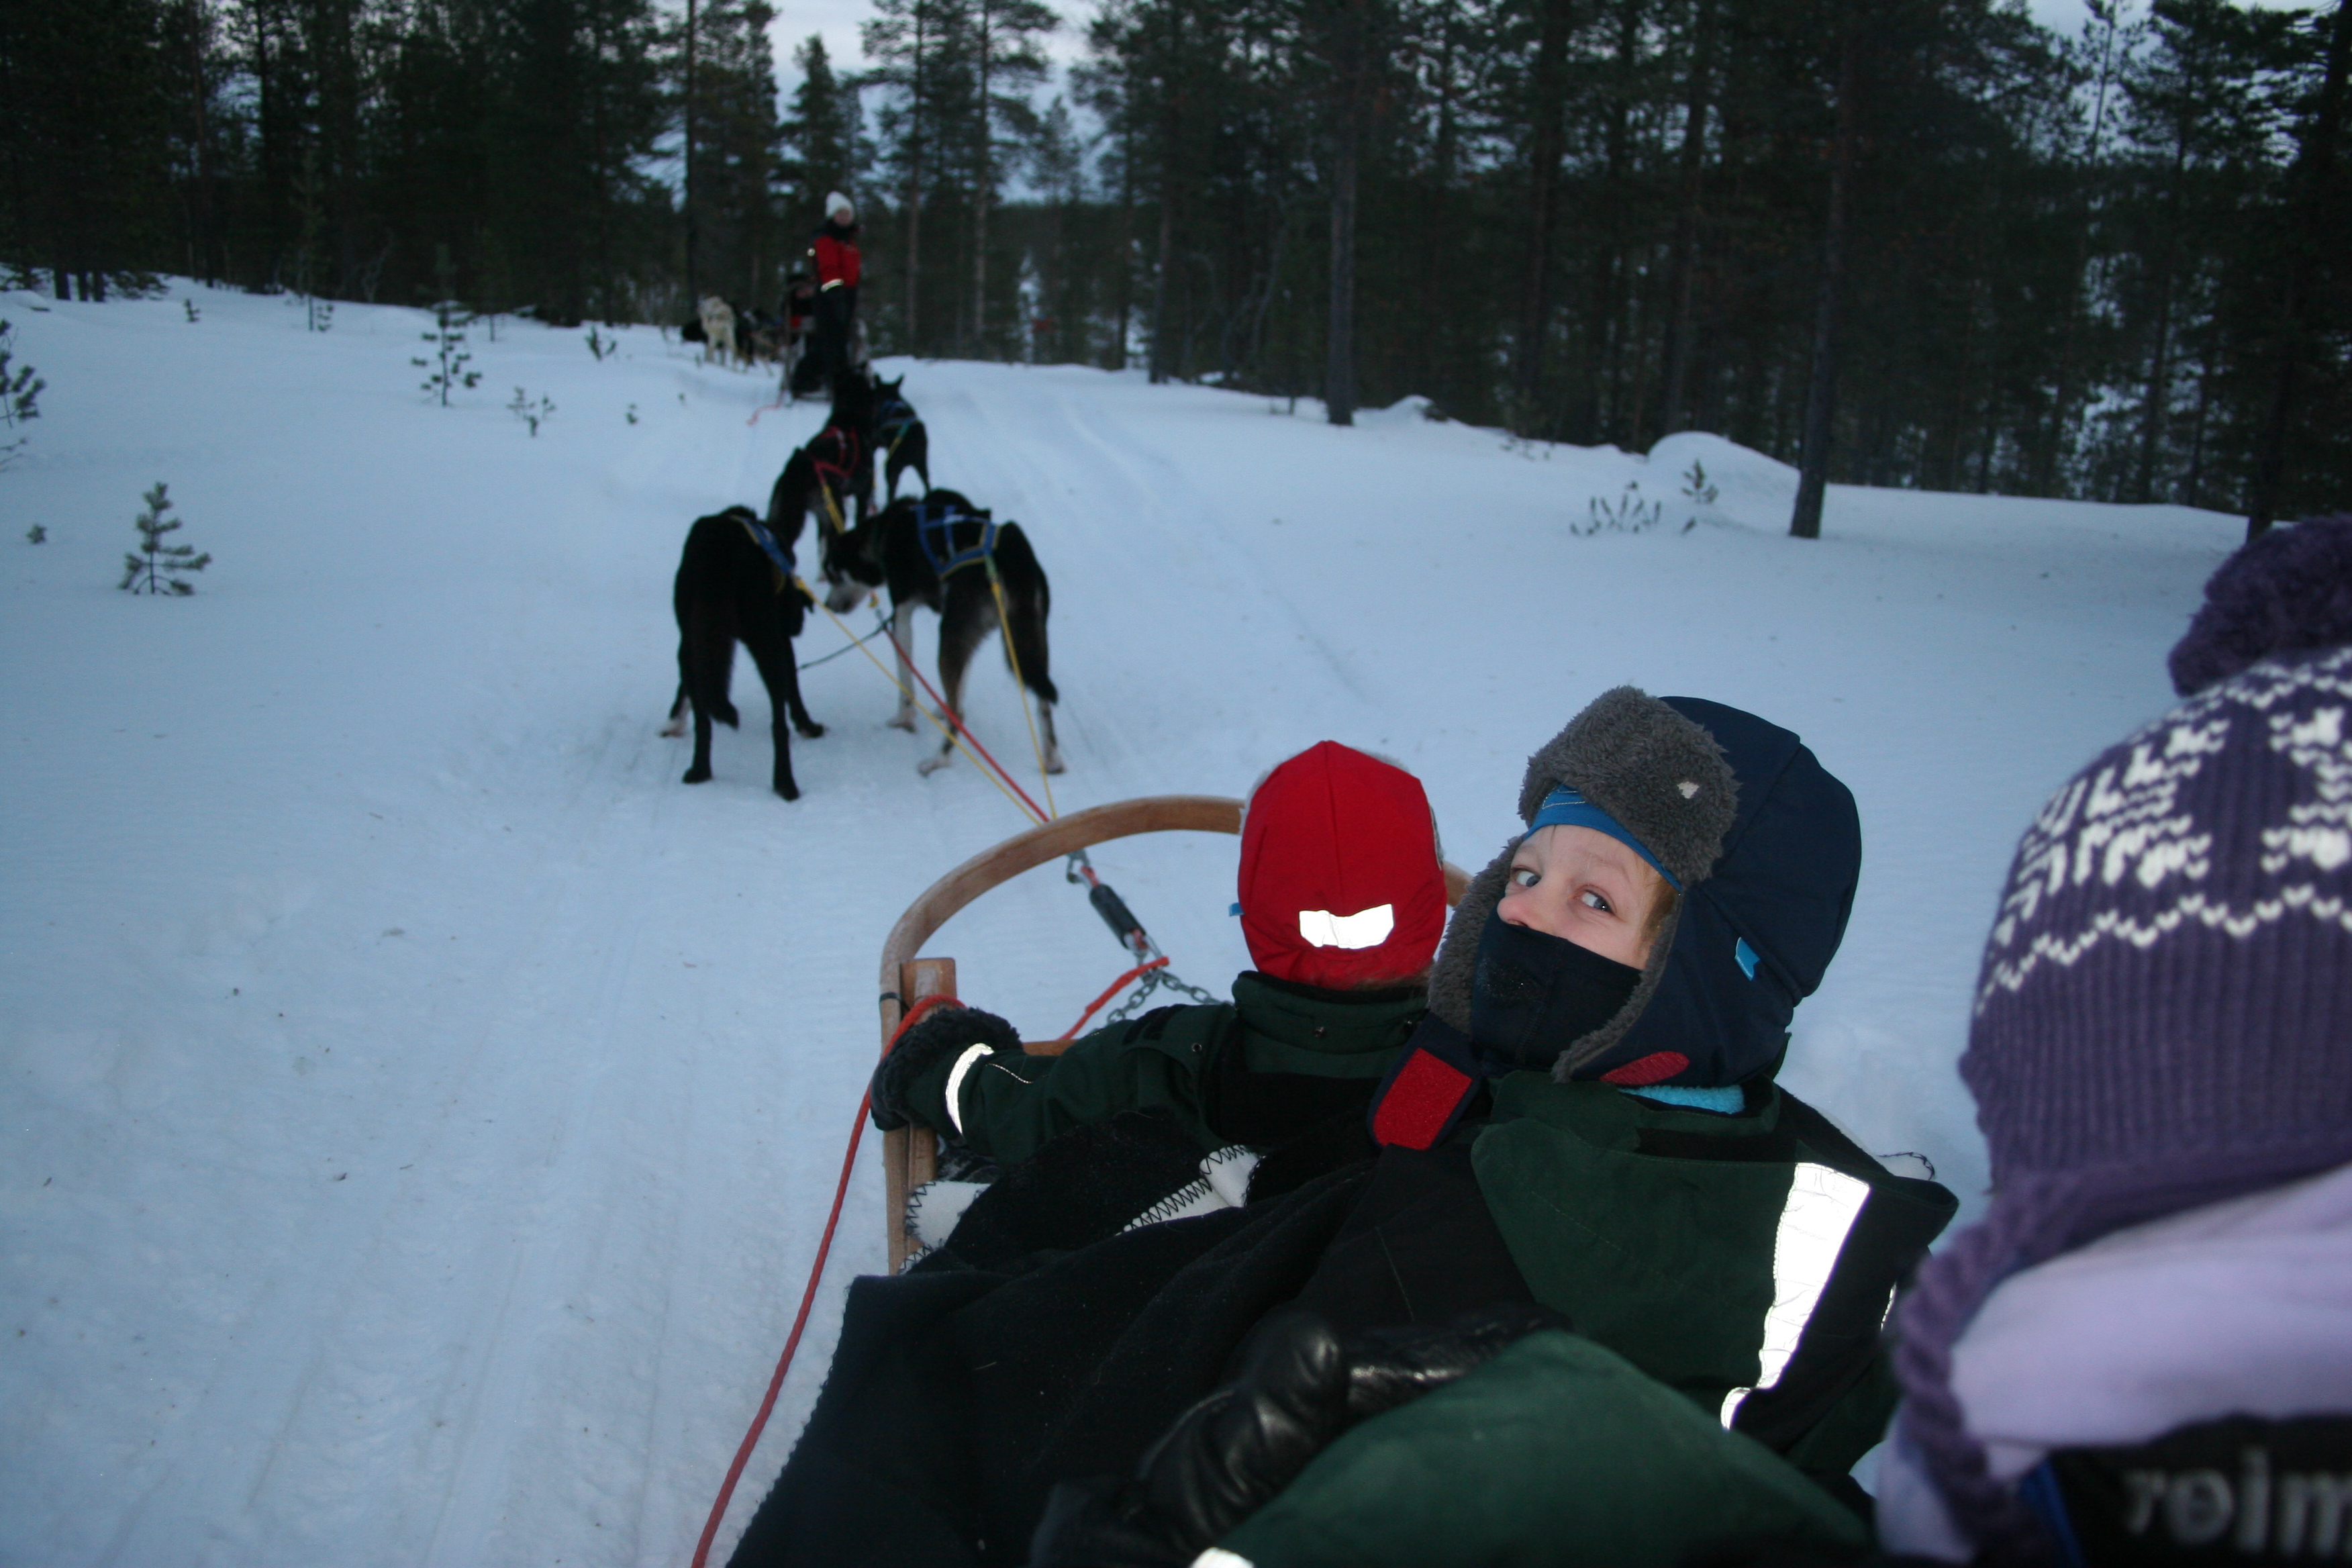 A family packing list for Lapland